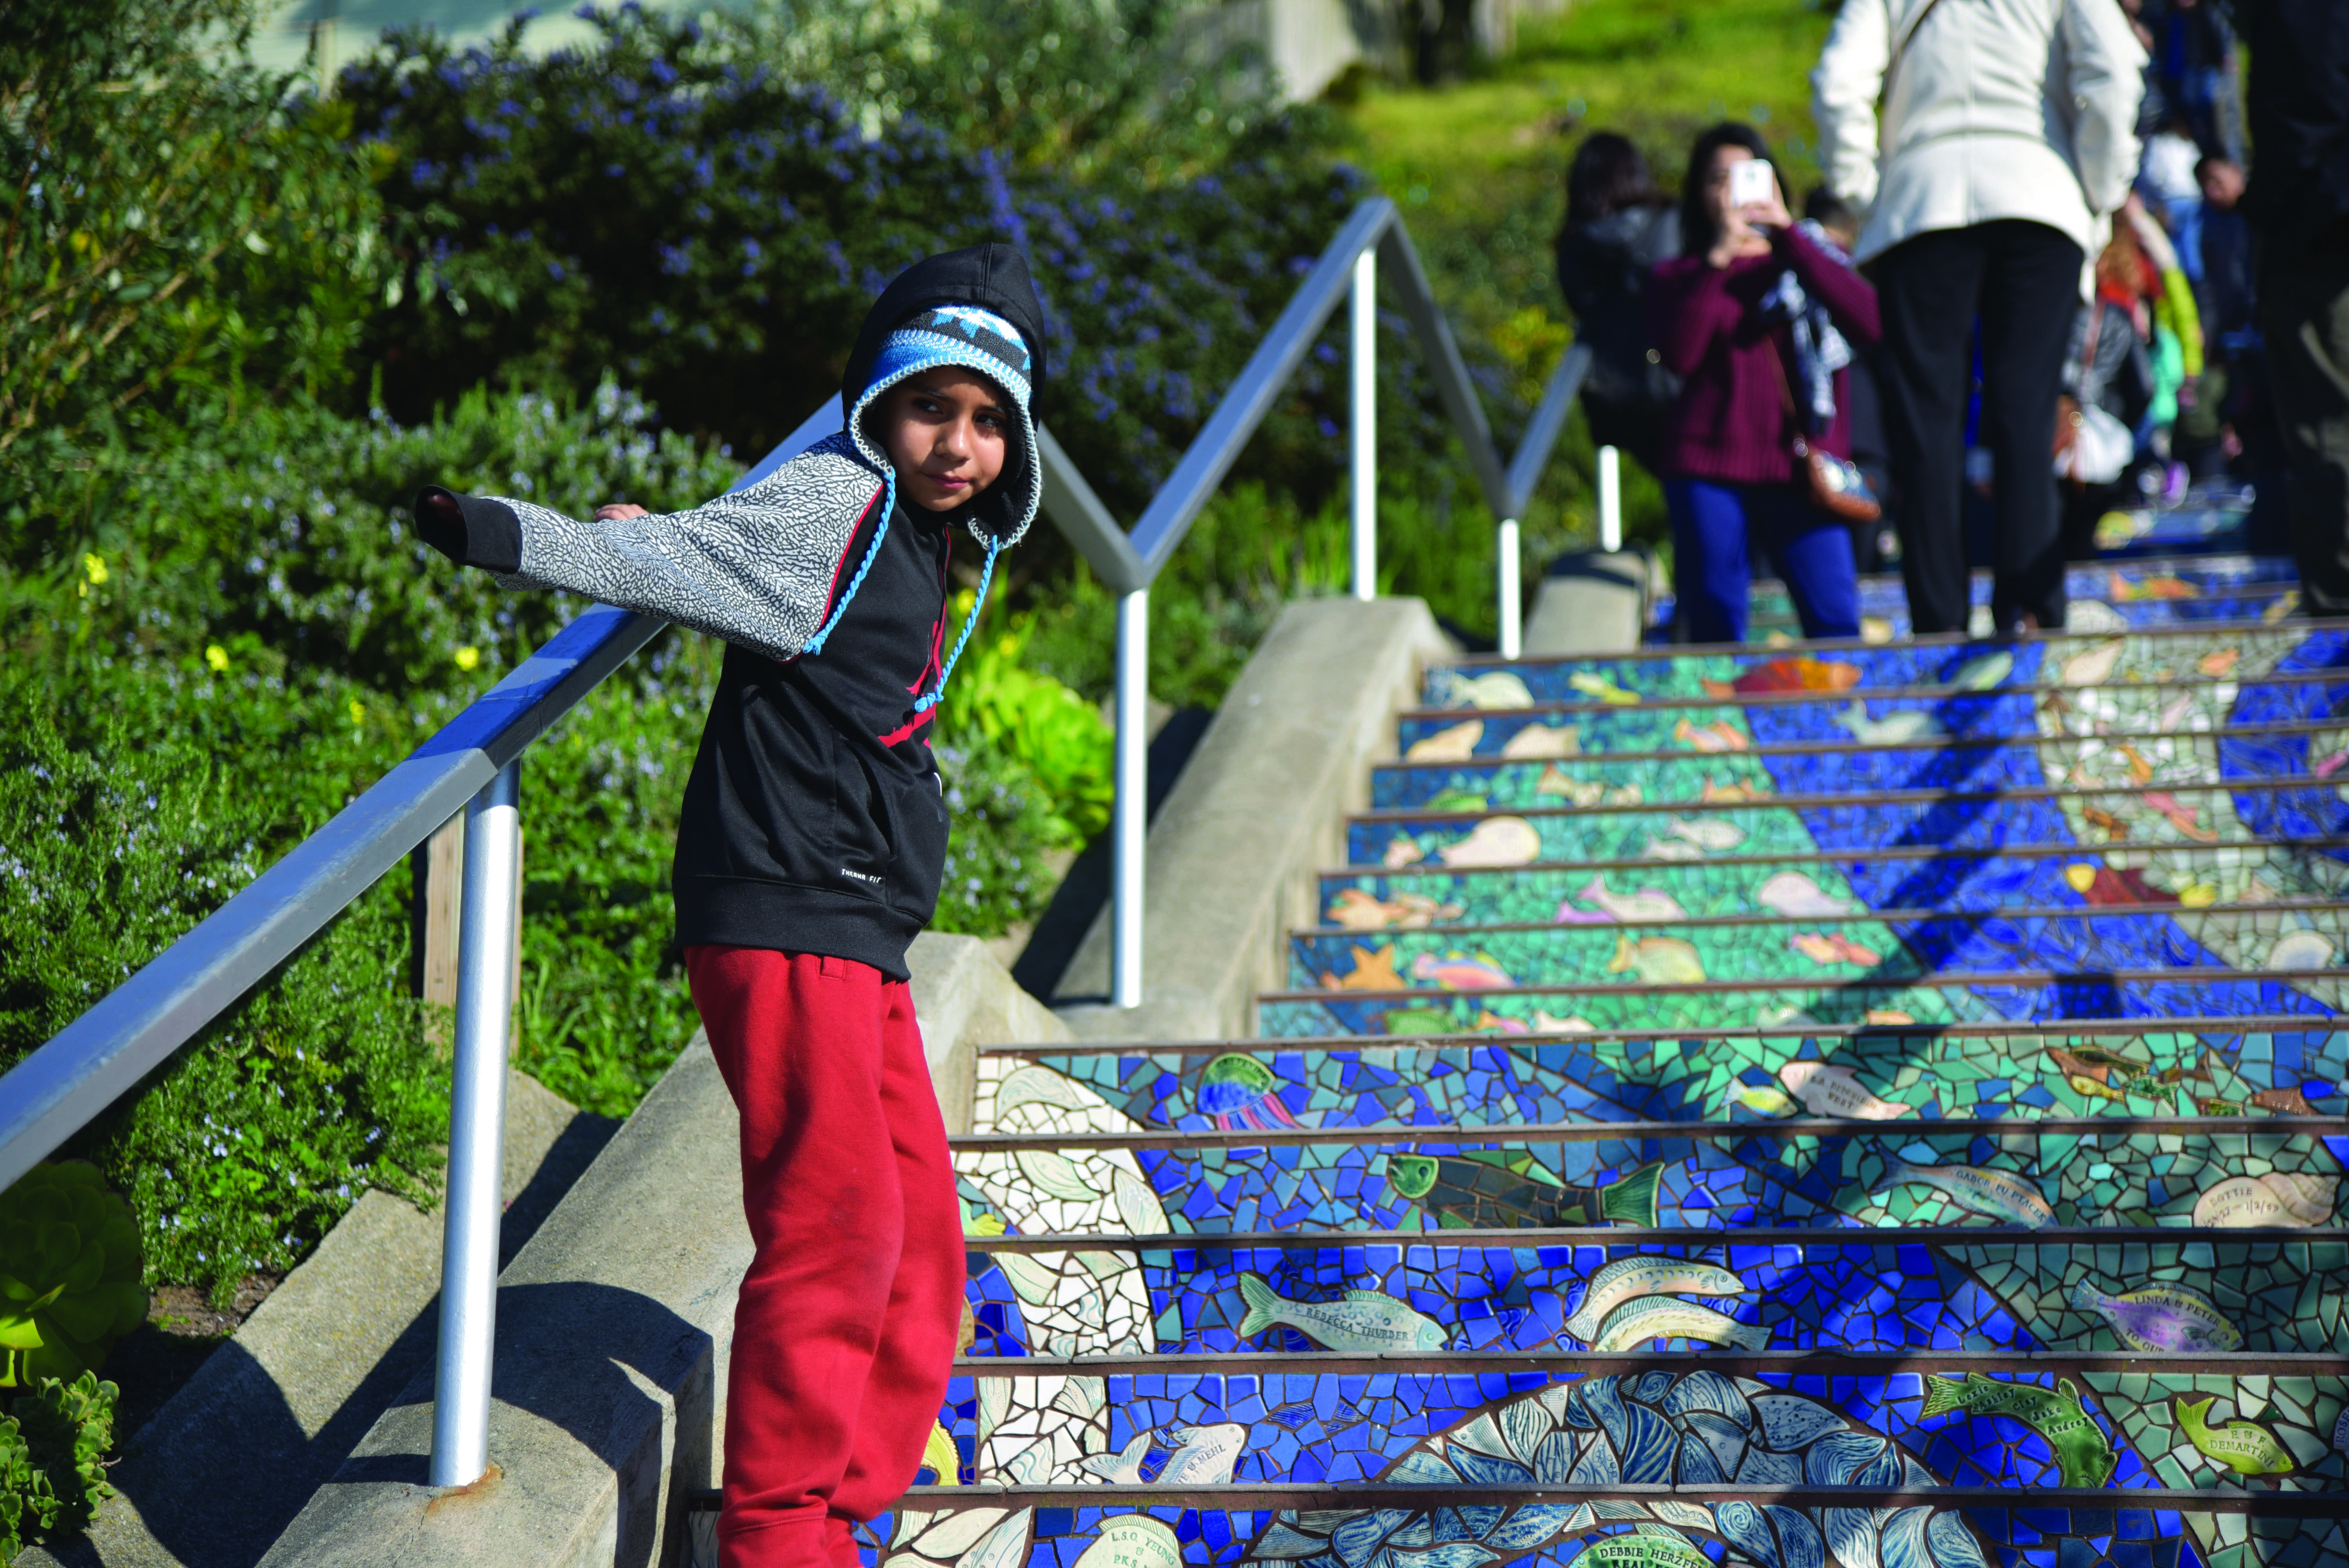 A boy slides along the handrail of the 16th Ave Tiled Steps, a popular destination for locals and tourists.